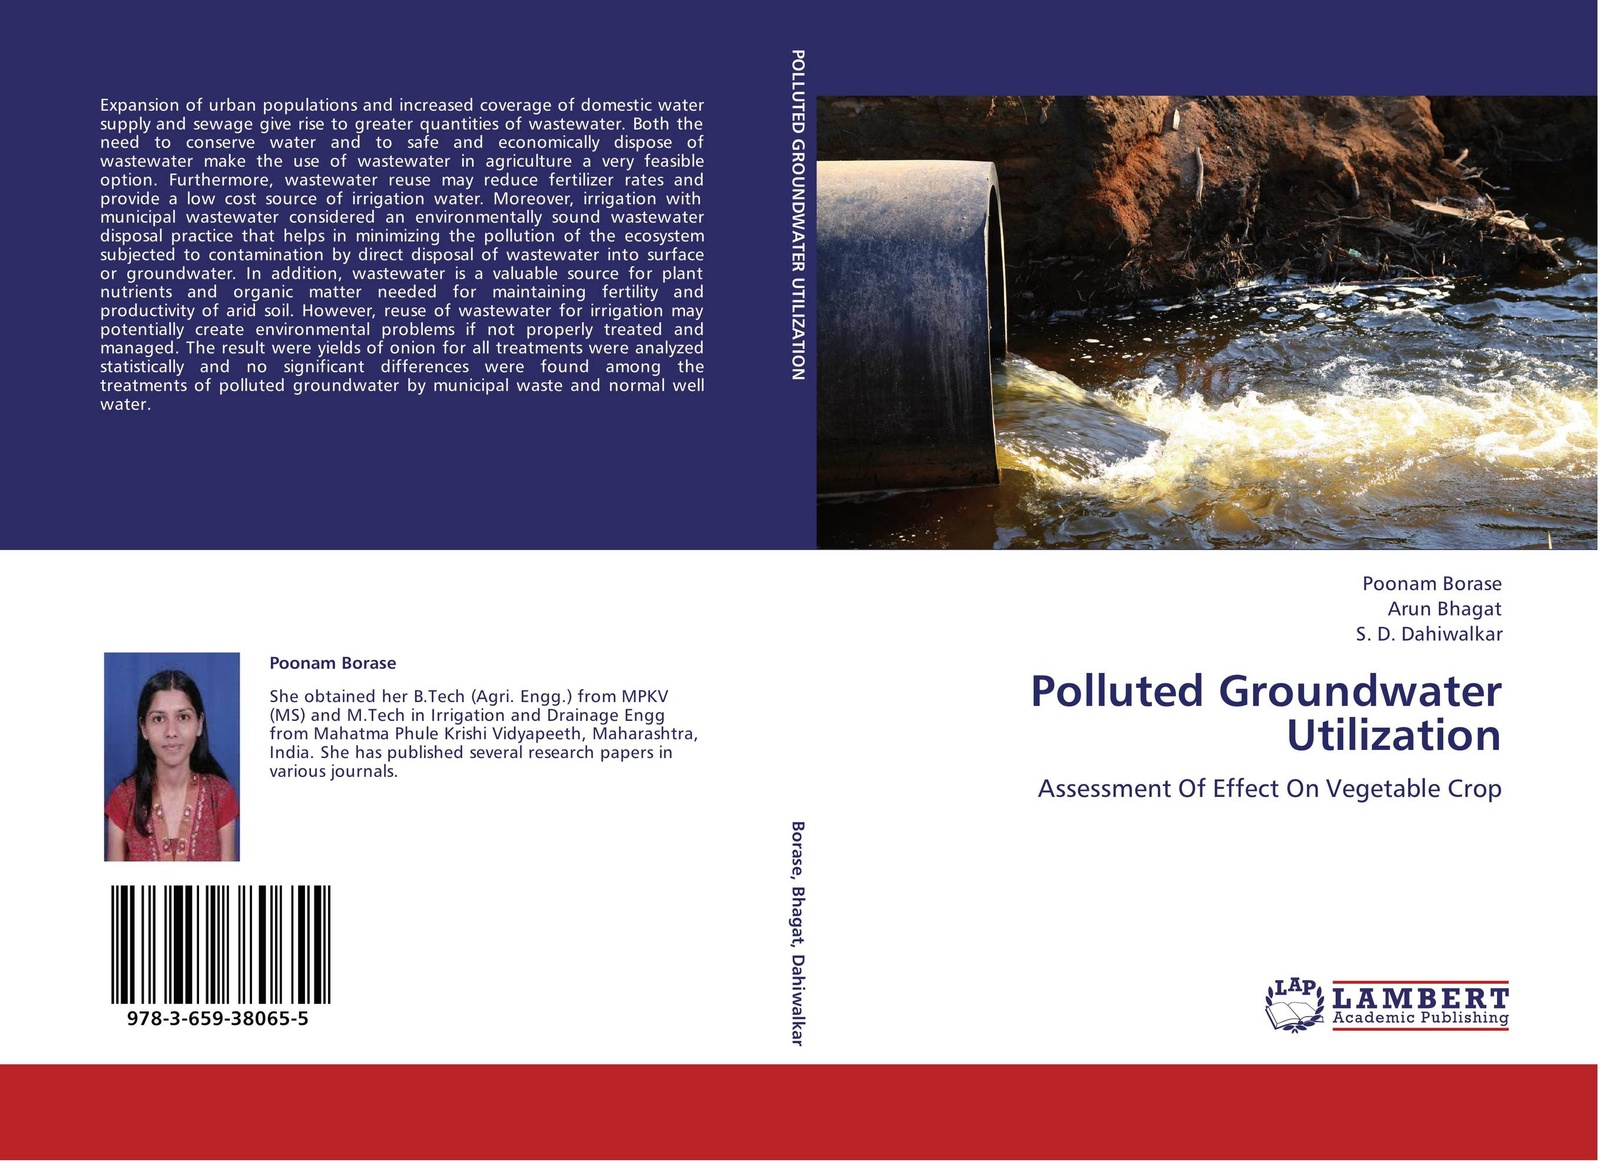 Poonam Borase,Arun Bhagat and S. D. Dahiwalkar Polluted Groundwater Utilization gholamreza asadollahfardi rashin asadollahfardi the usage of the polluted water for agriculture